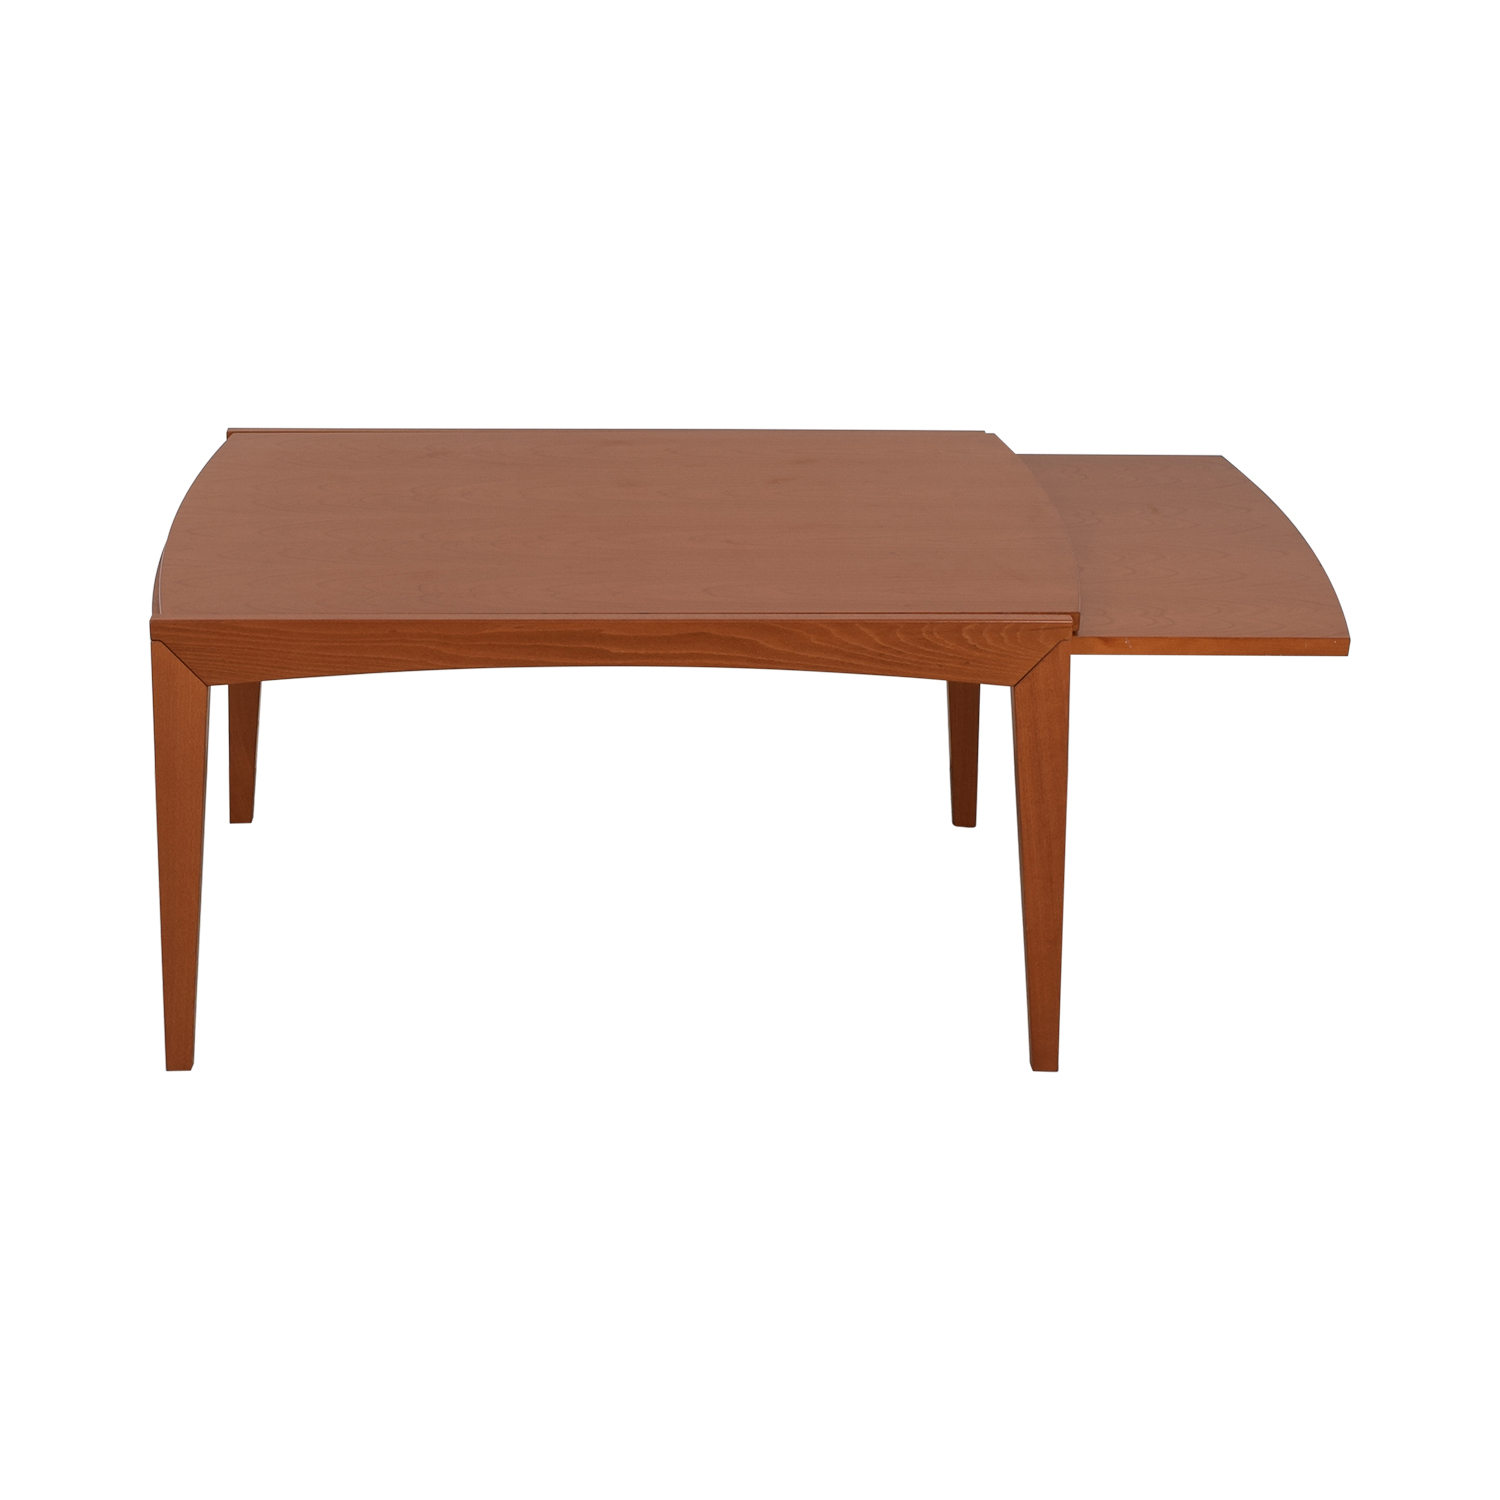 Calligaris Calligaris Refectory Dining Table for sale